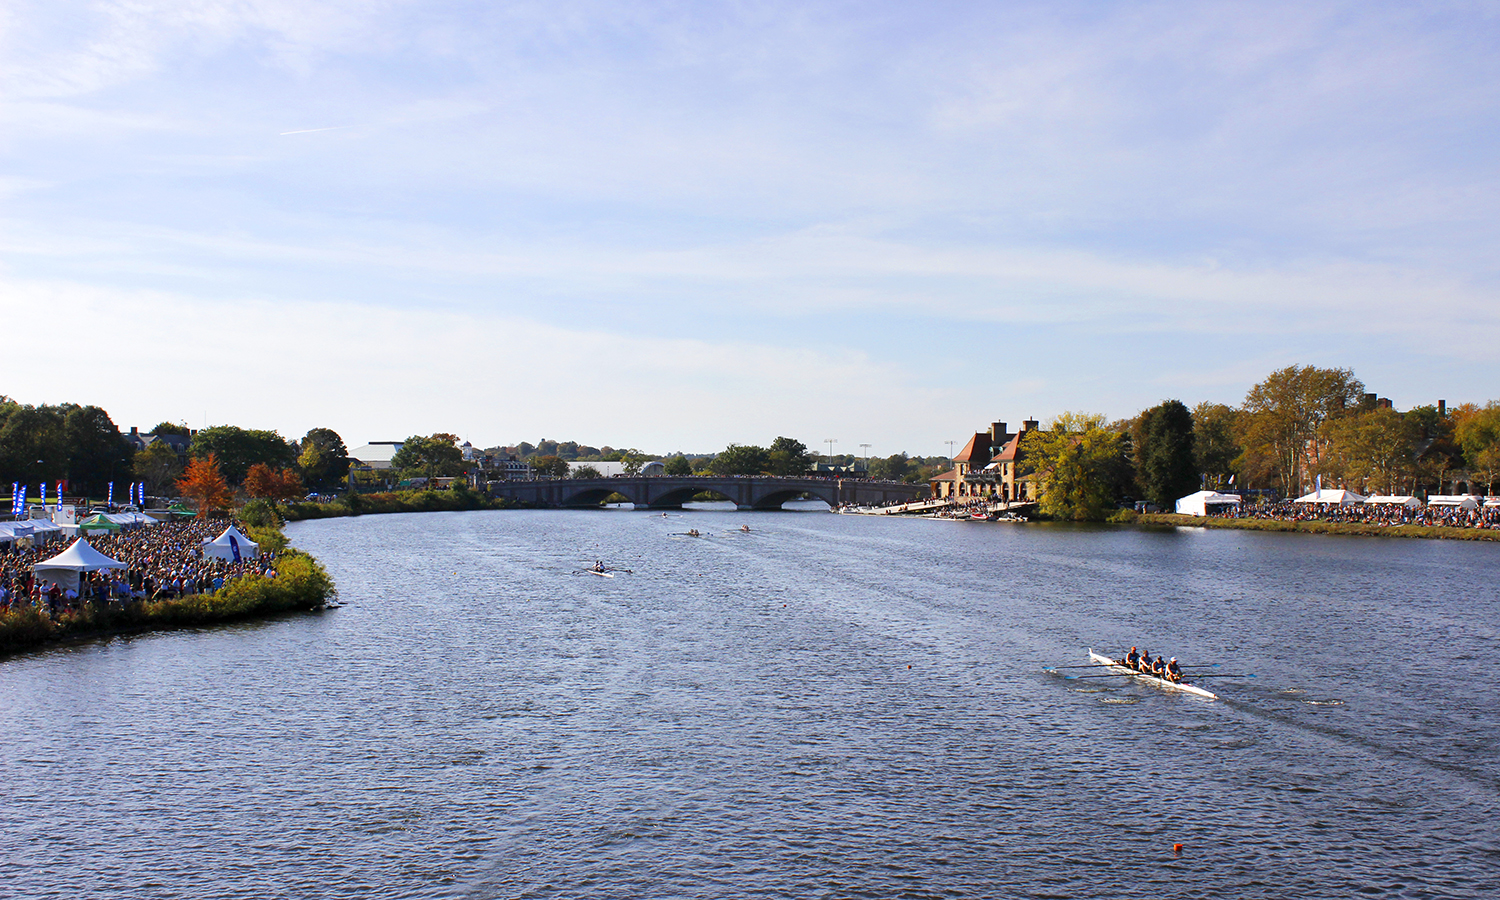 A view of the Head of the Charles Regatta from above. The Hobart College varsity eight was named the Liberty League Men's Rowing Boat of the Week following a 12th place finish in the men's collegiate eights event.